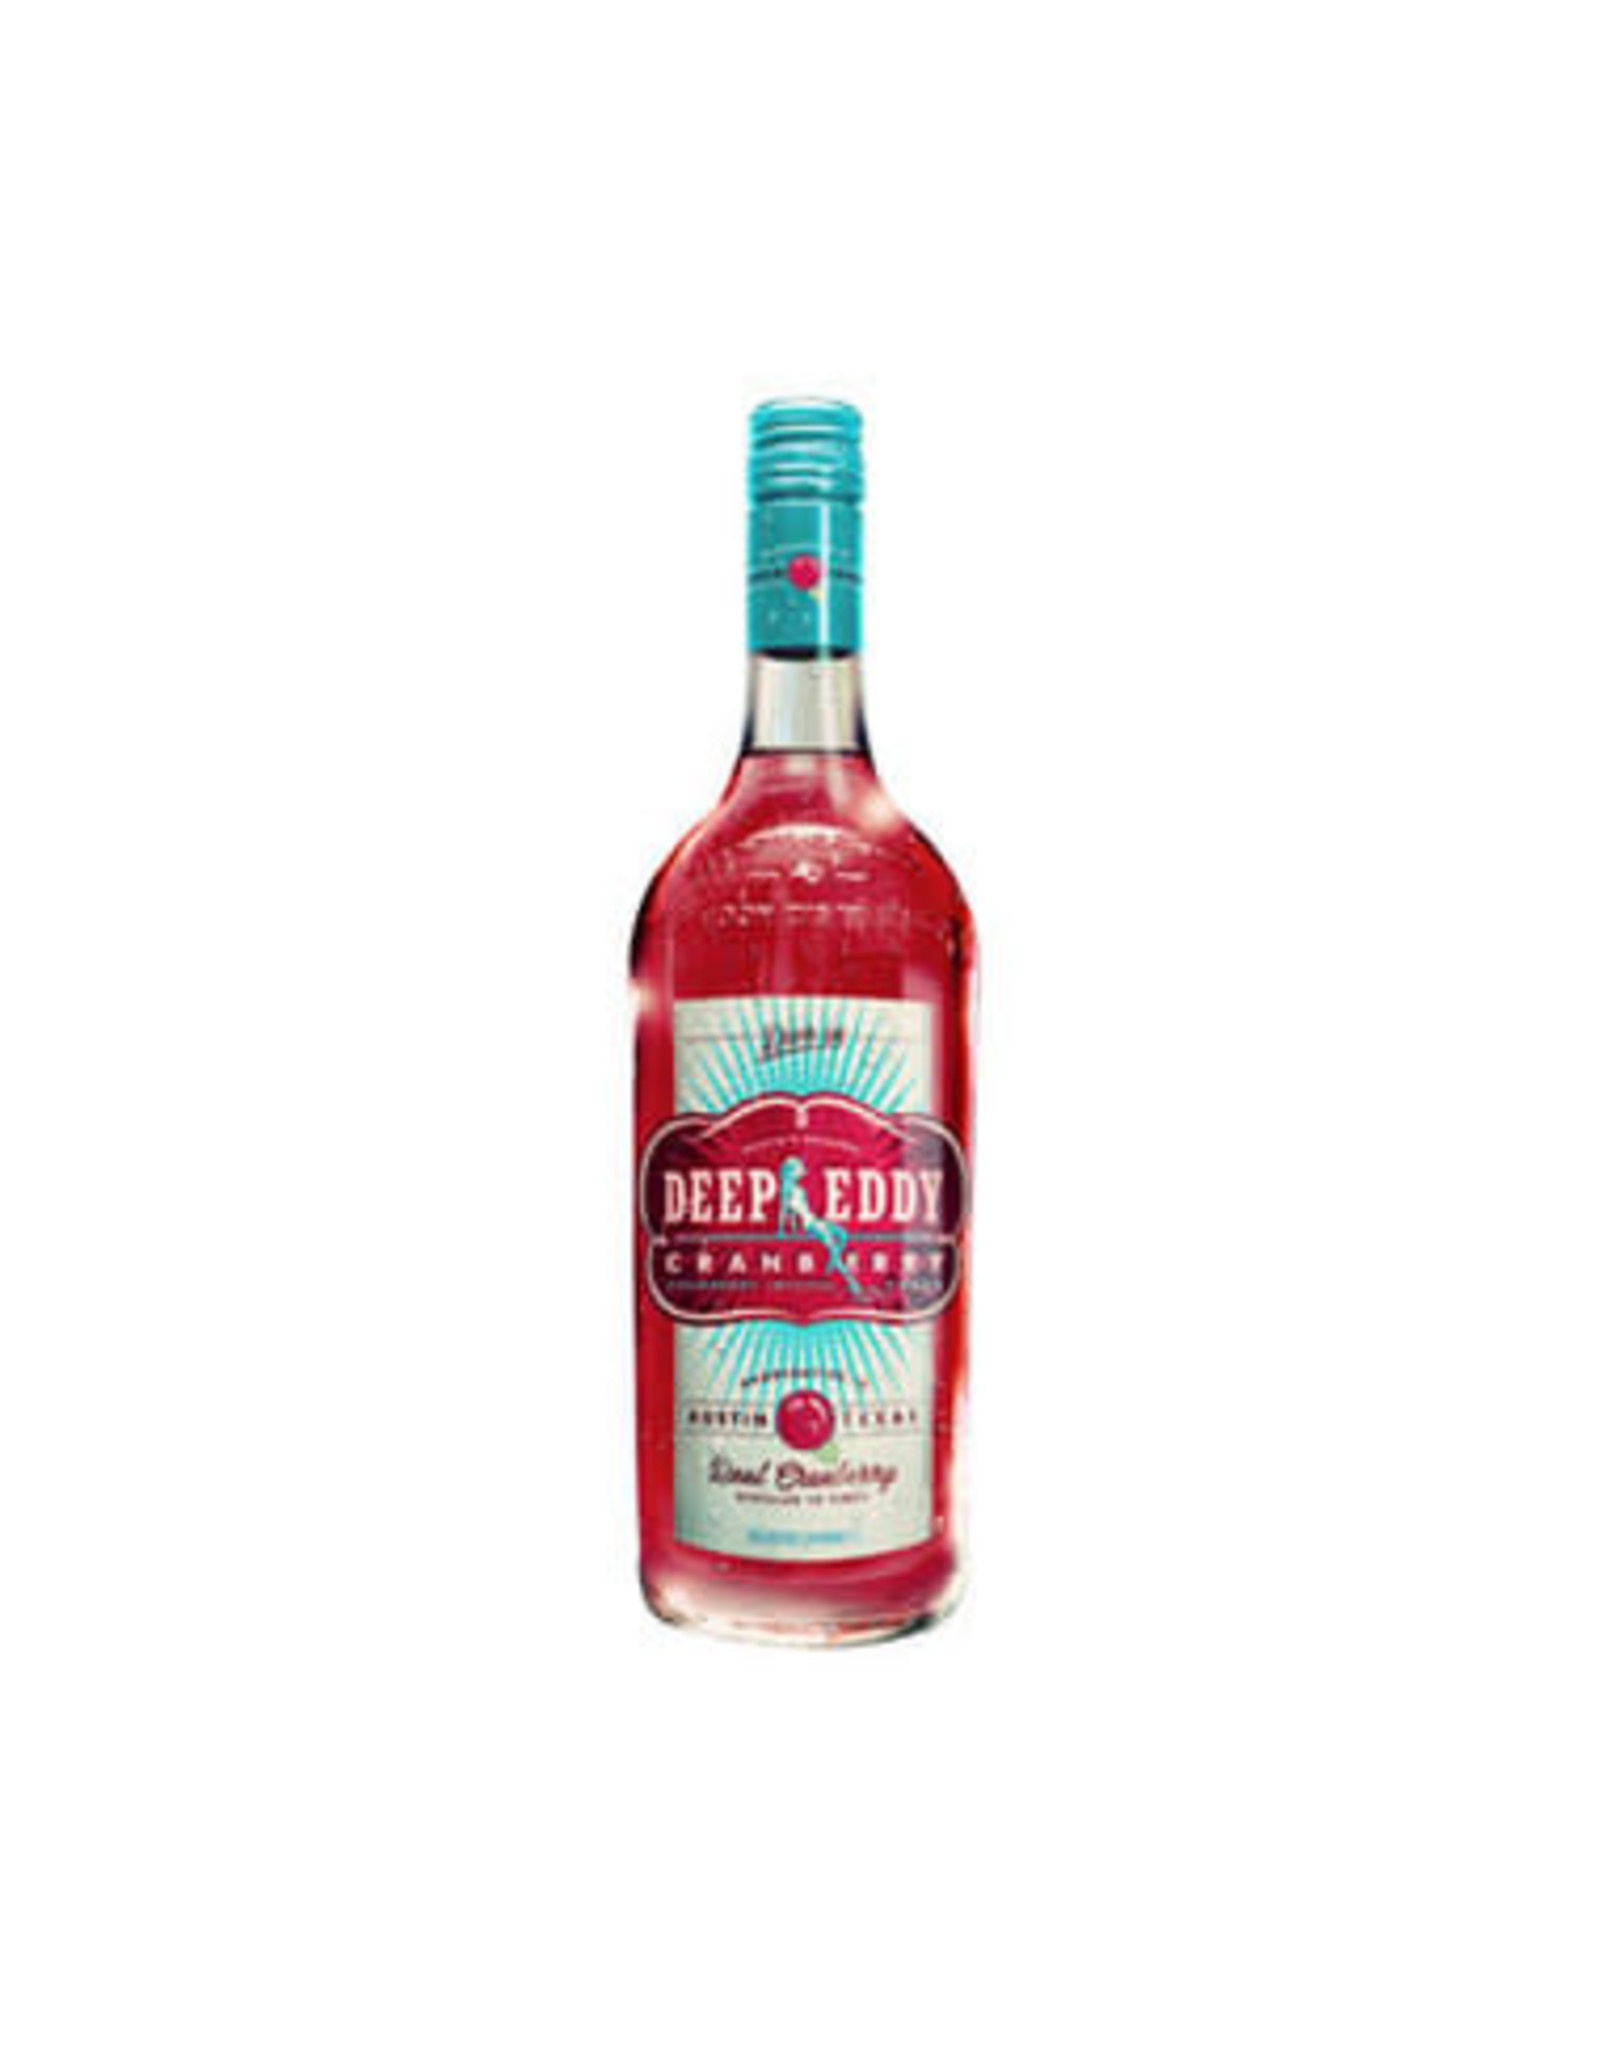 DEEP EDDY CRANBERRY VODKA 750ML